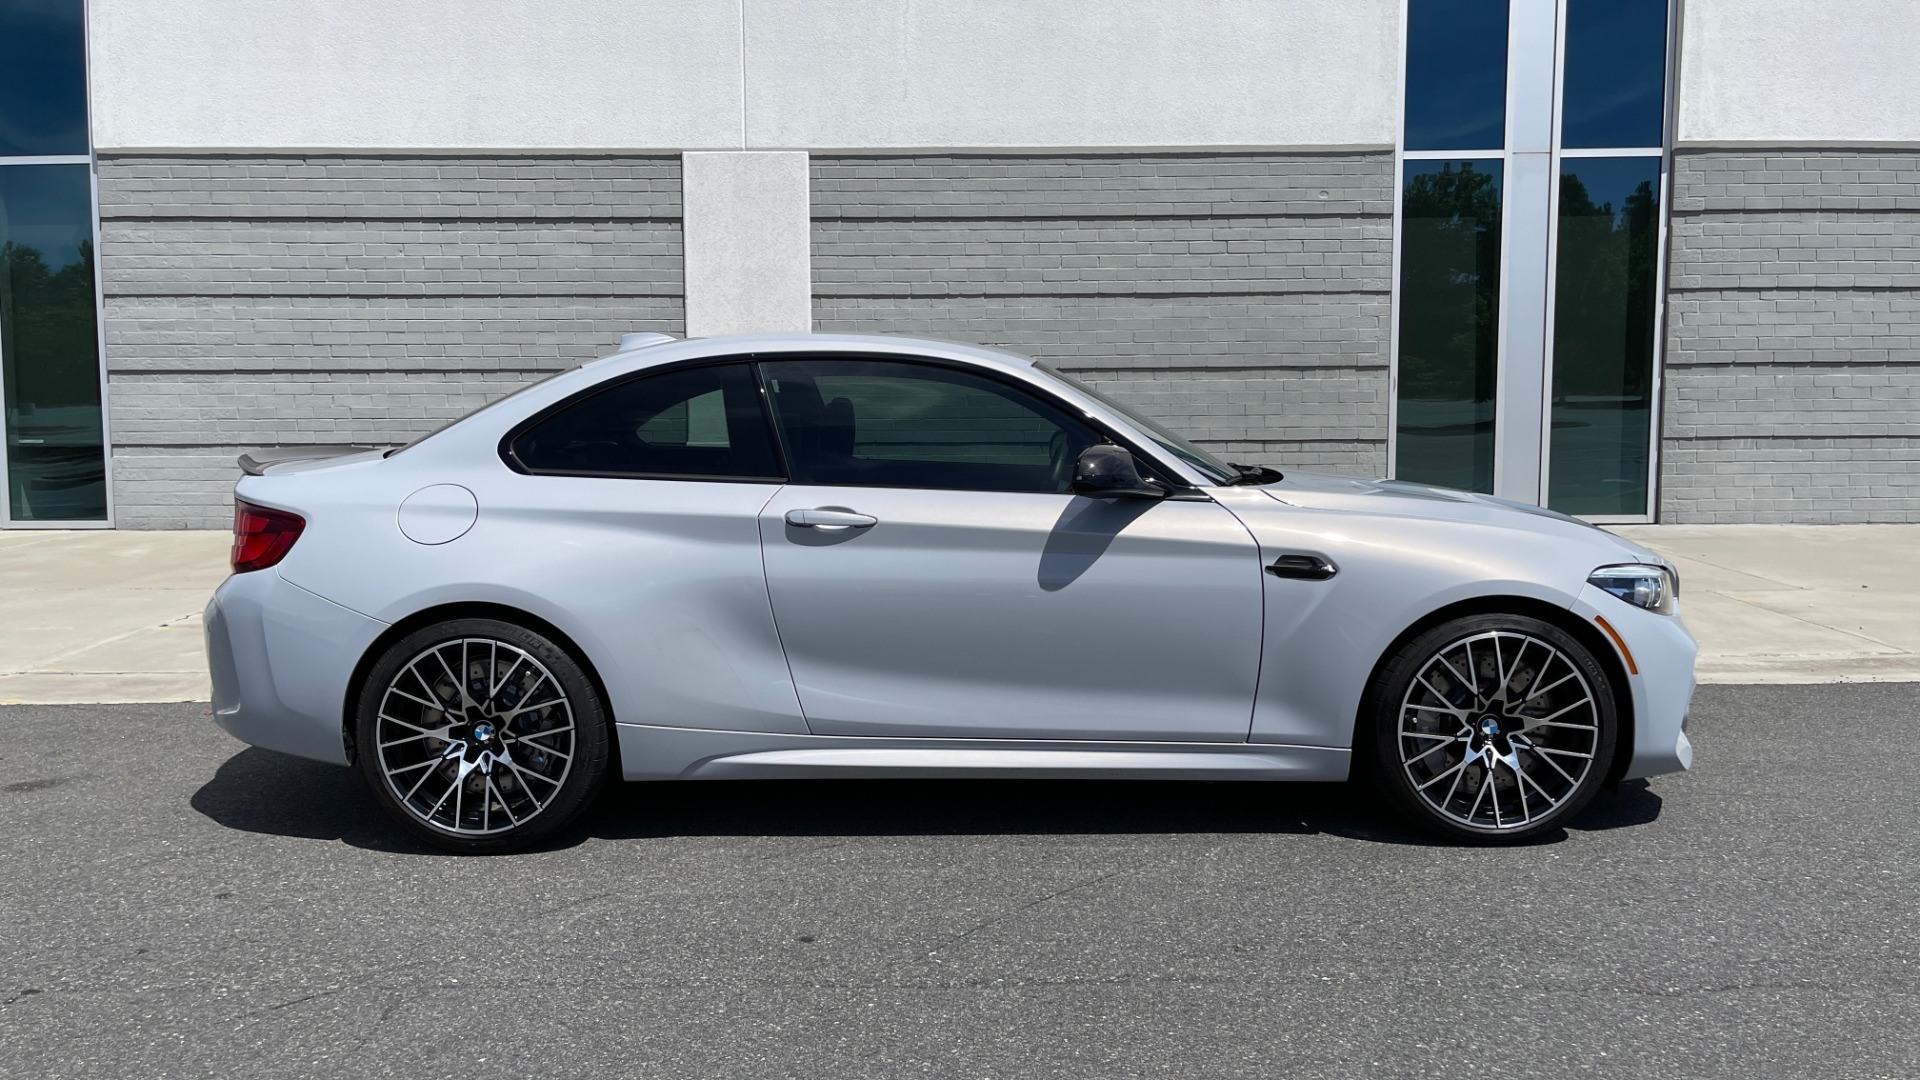 Used 2020 BMW M2 COMPETITION 405HP / COUPE / MANUAL / NAV / H/K SOUND / REARVIEW for sale $64,388 at Formula Imports in Charlotte NC 28227 7